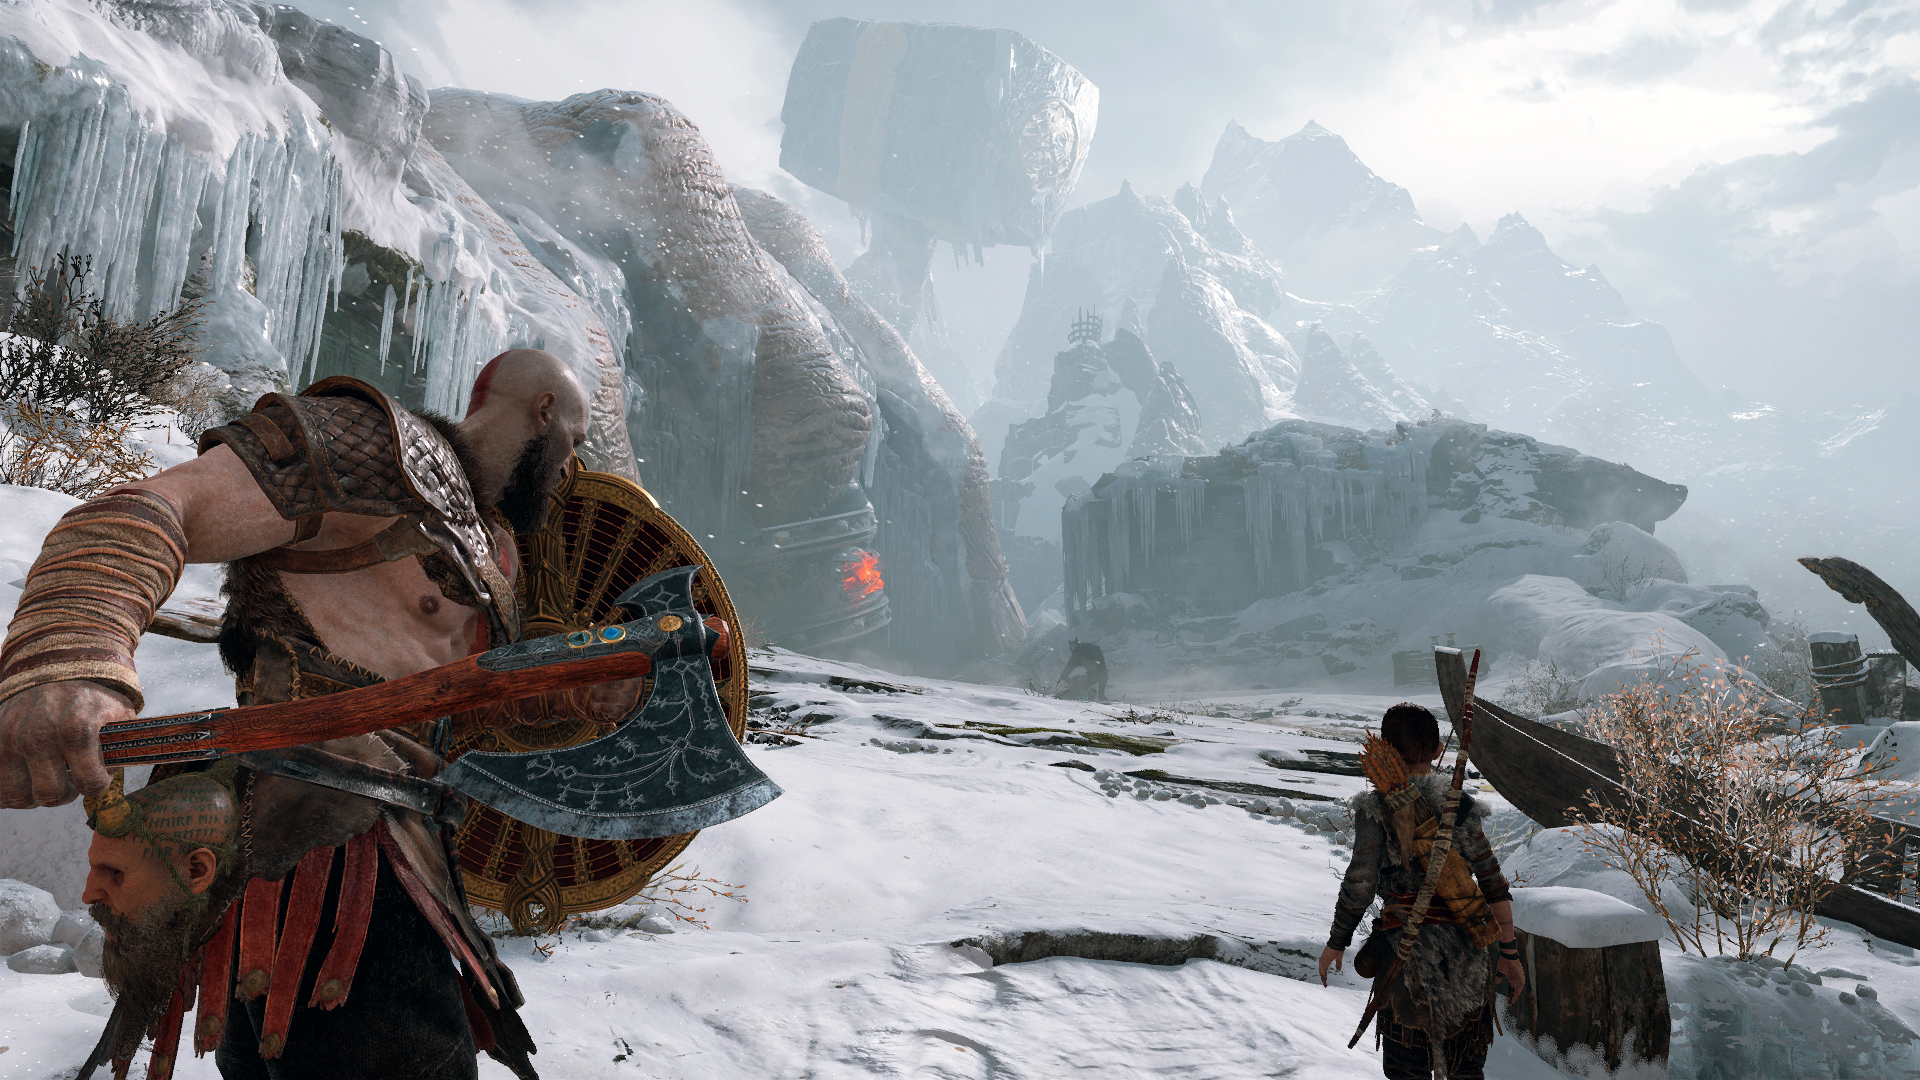 The new 'God of War' is going to be a huge success